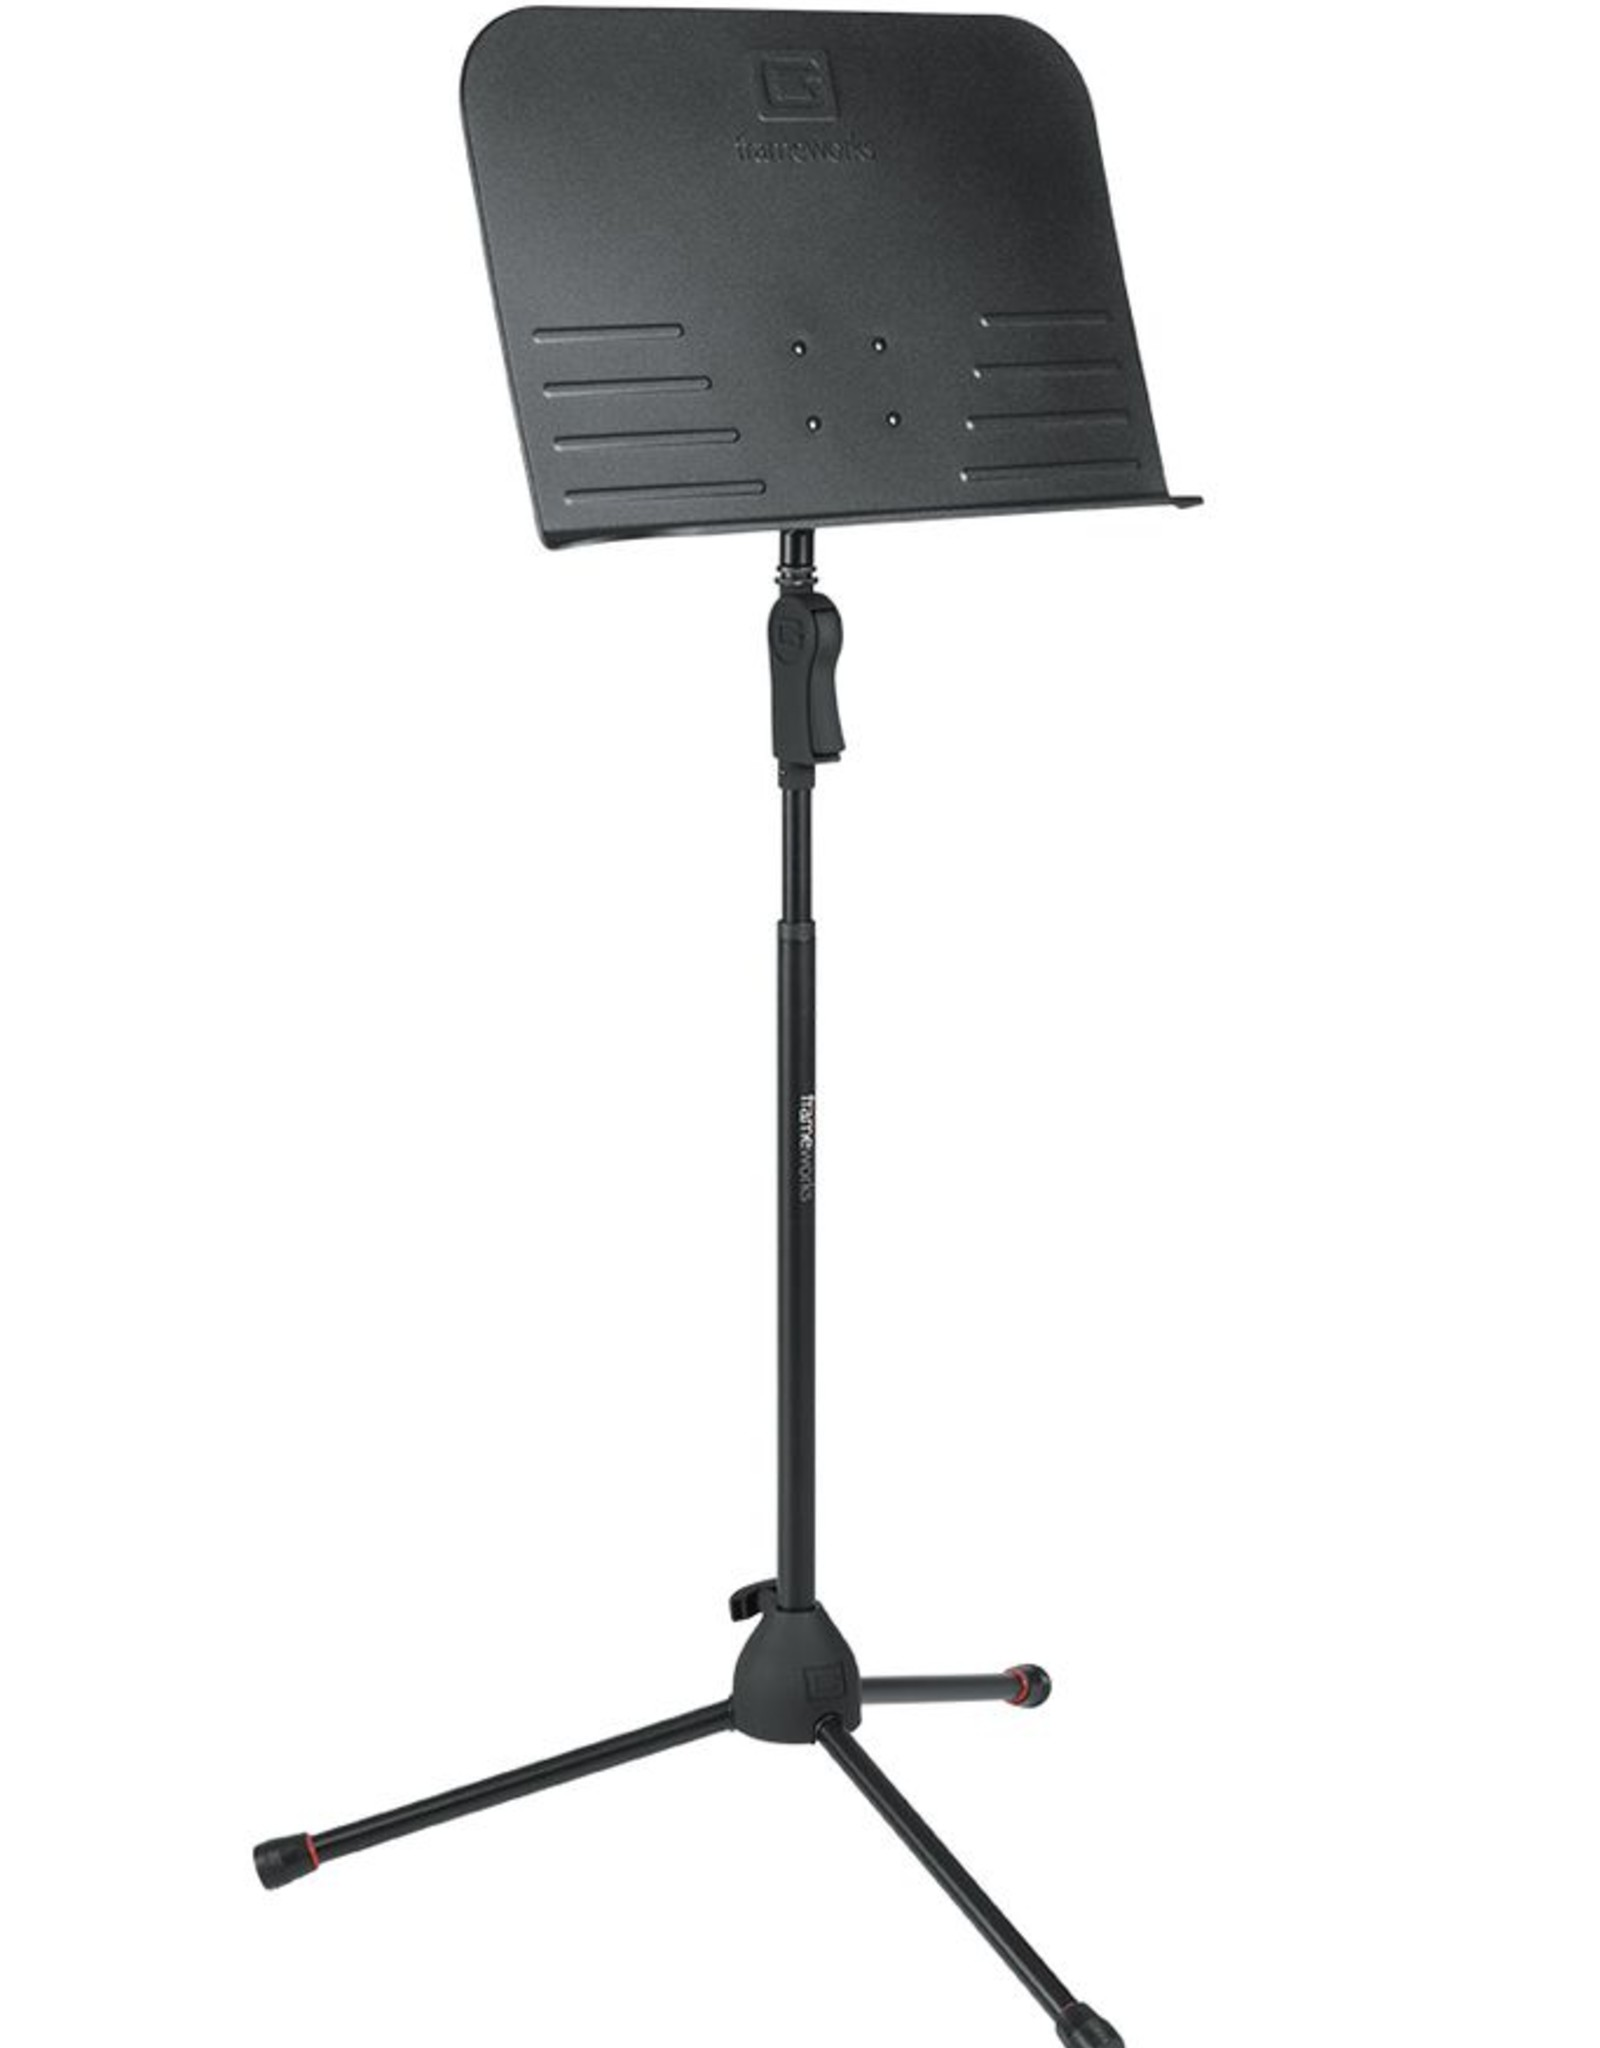 Gator Gator Frame Works. Deluxe Tripod Sheet Music Stand with One Handed Clutch Height Adjustment